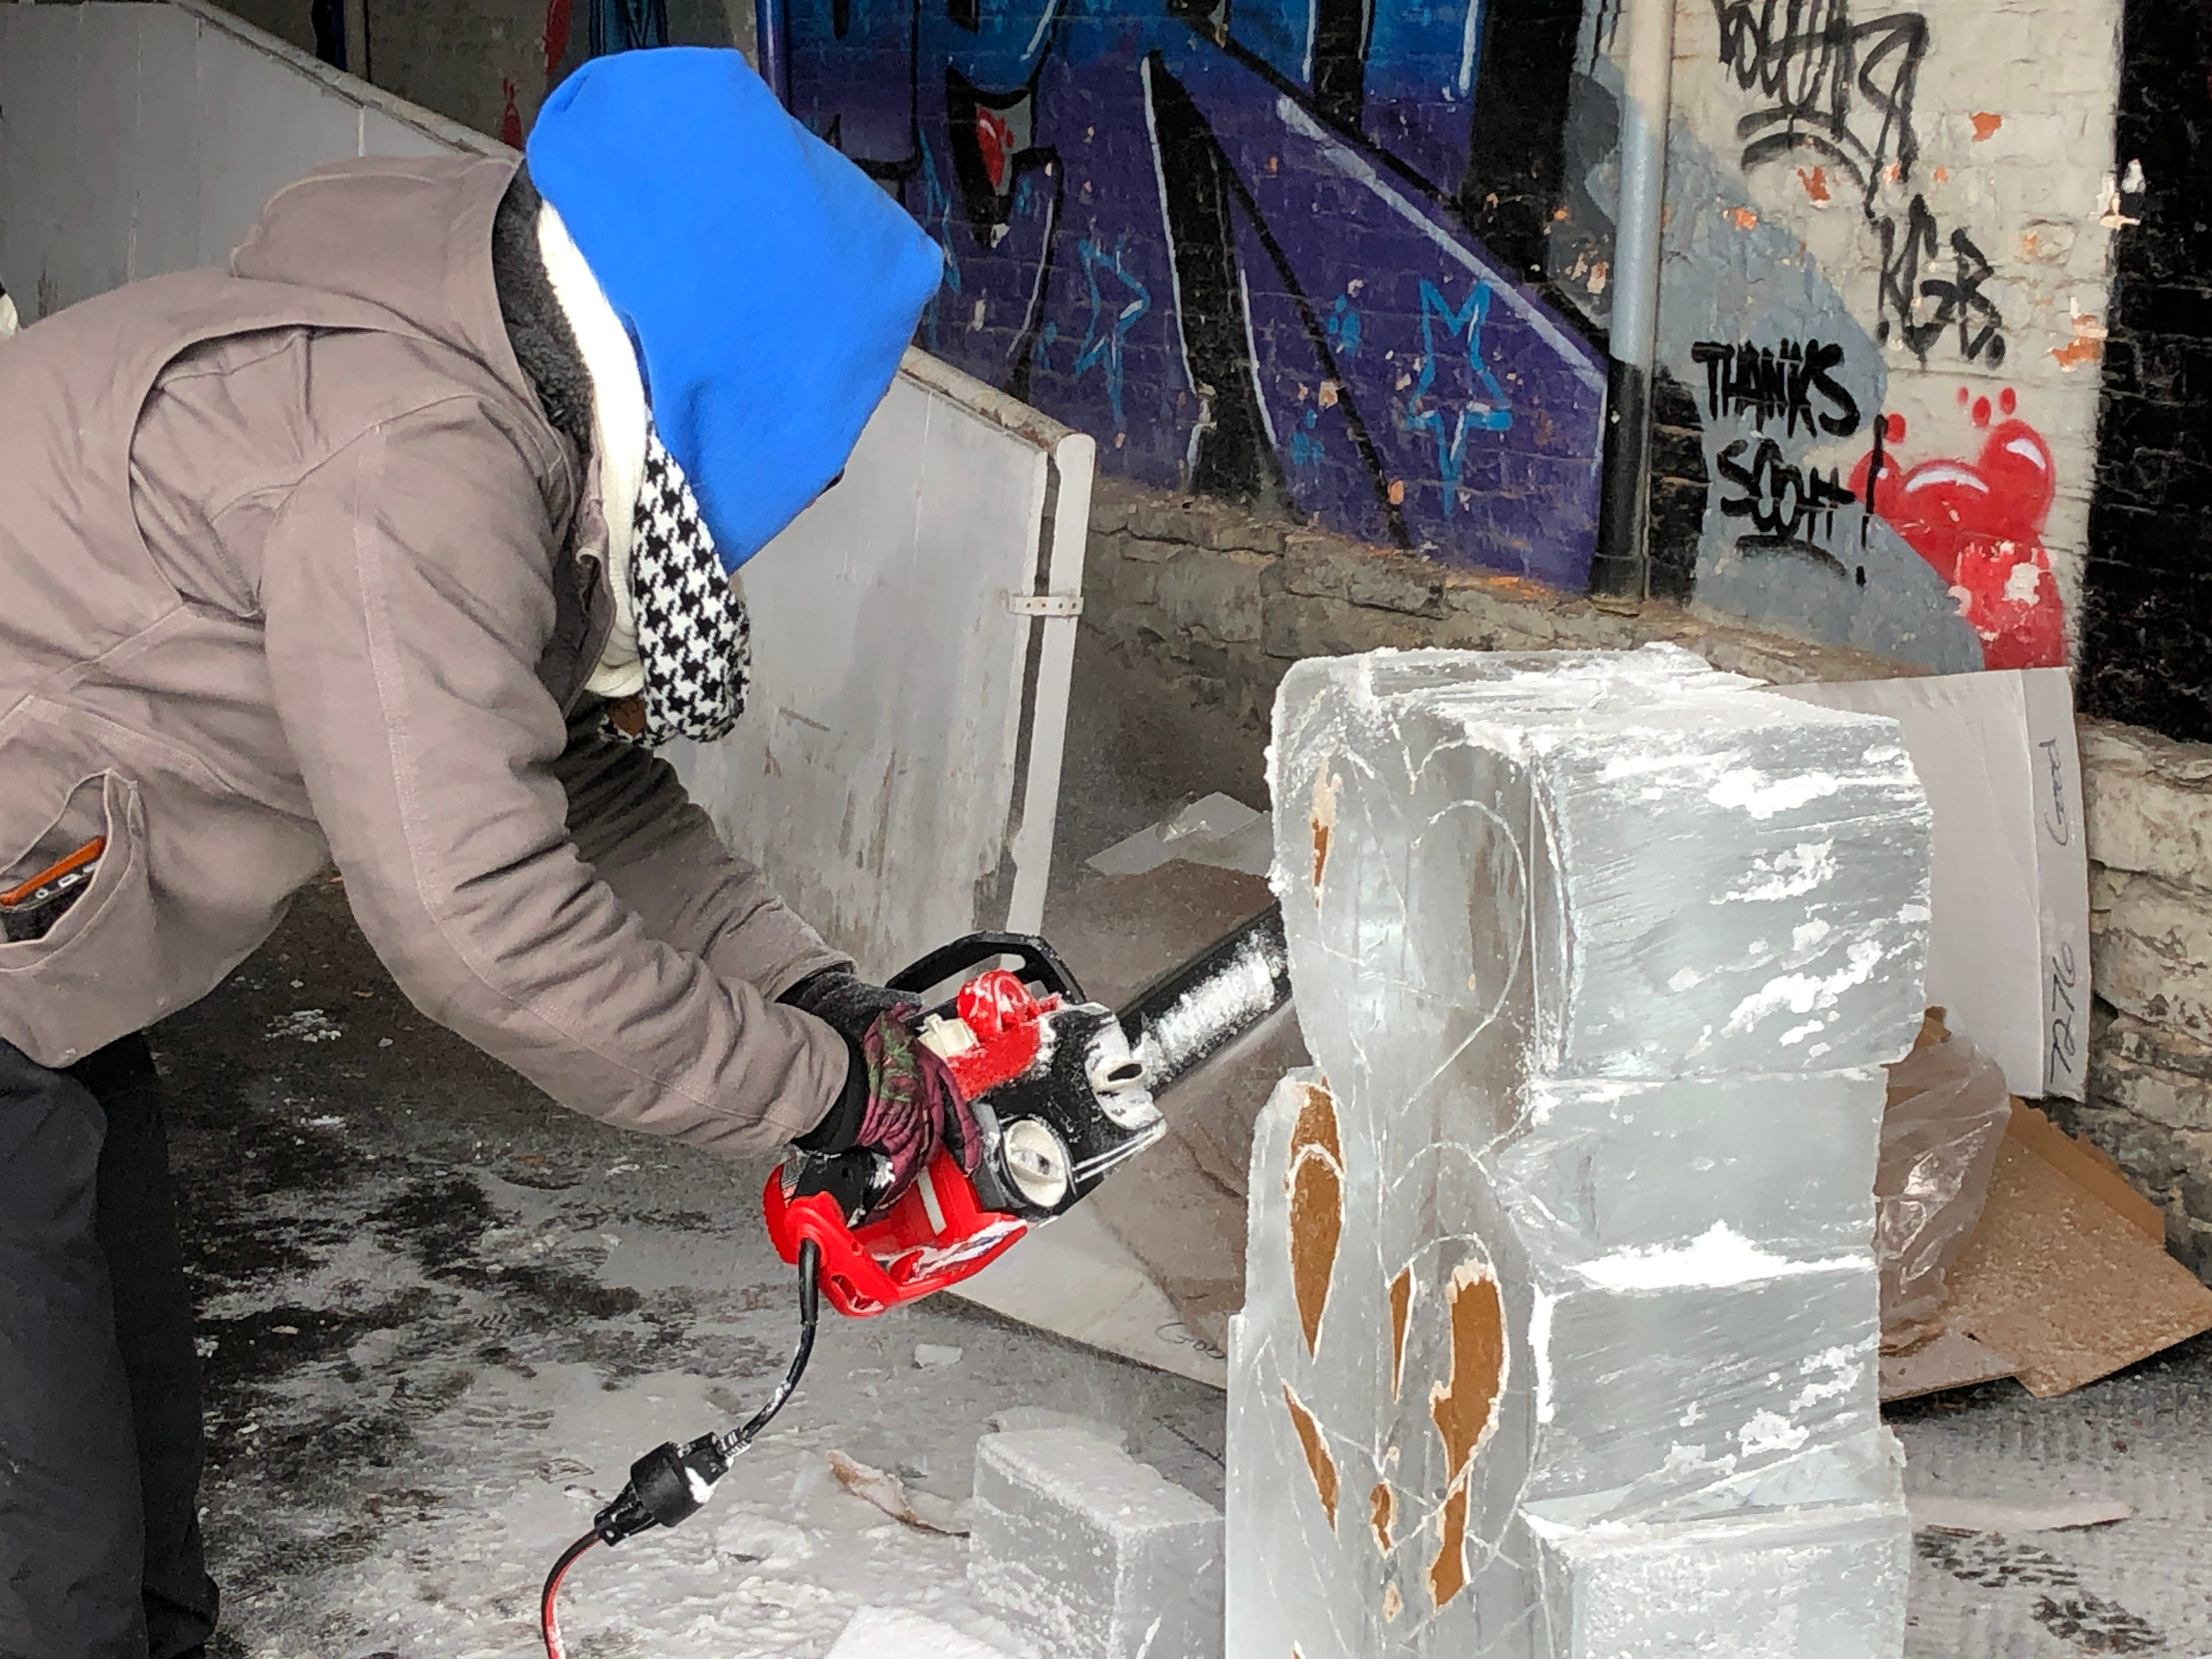 After a brief break to get warm inside the farmers market, Emily Schmidt was back to work shaping hearts in the ice with a chainsaw.